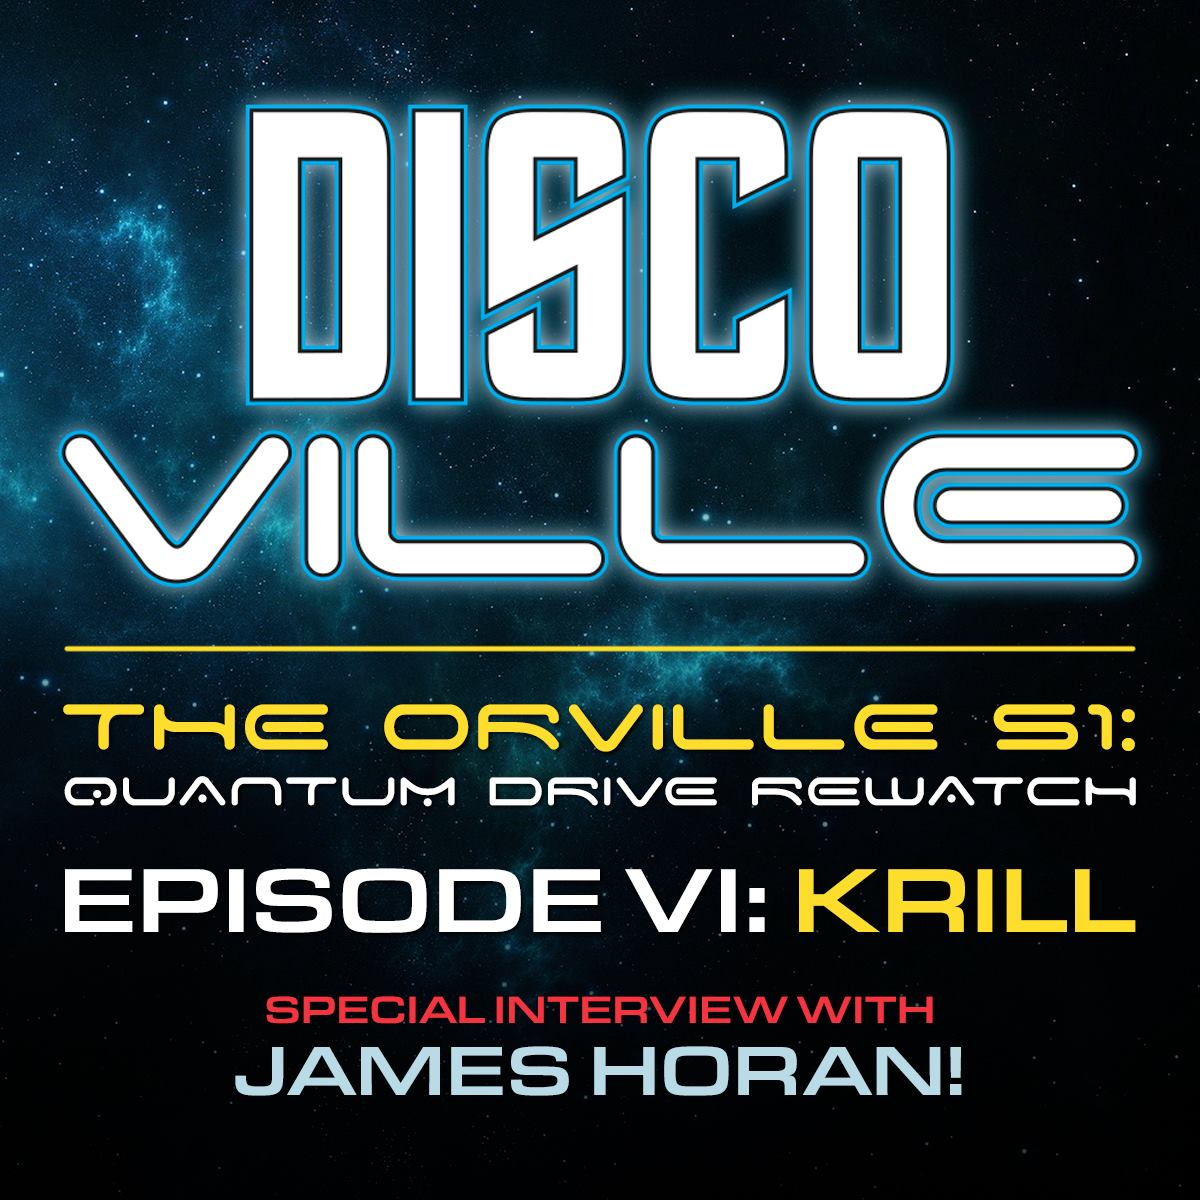 Episode 27: Quantum Drive REWATCH / The Orville Season One: KRILL